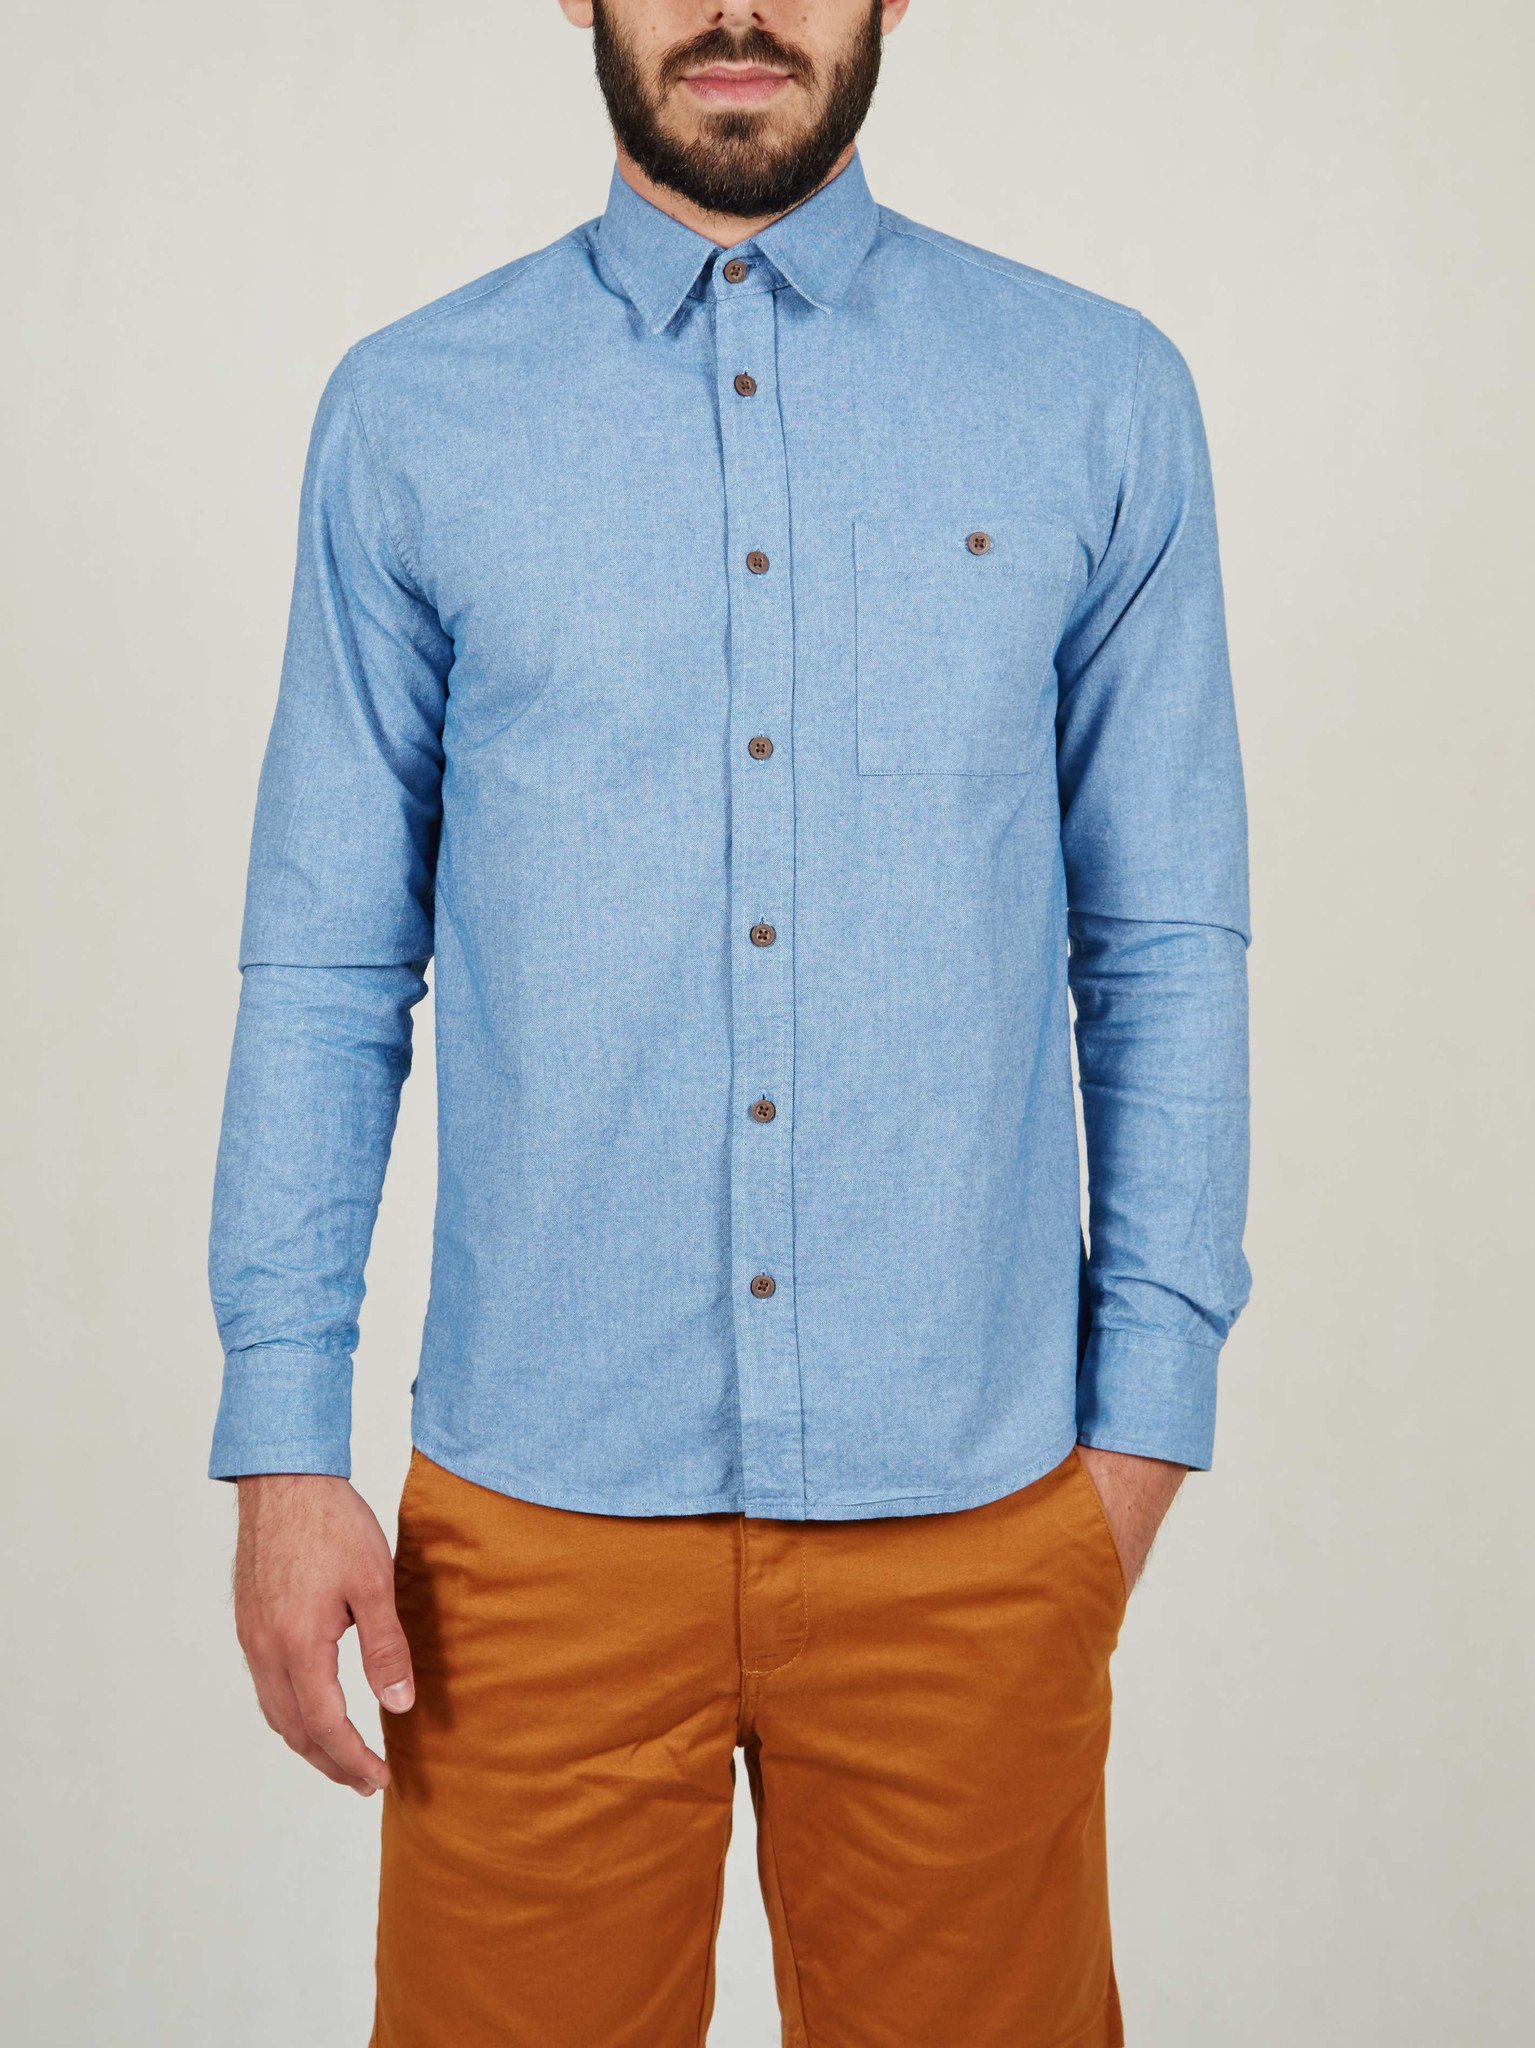 Foto do Camisa Cotton Project Oxford Azul